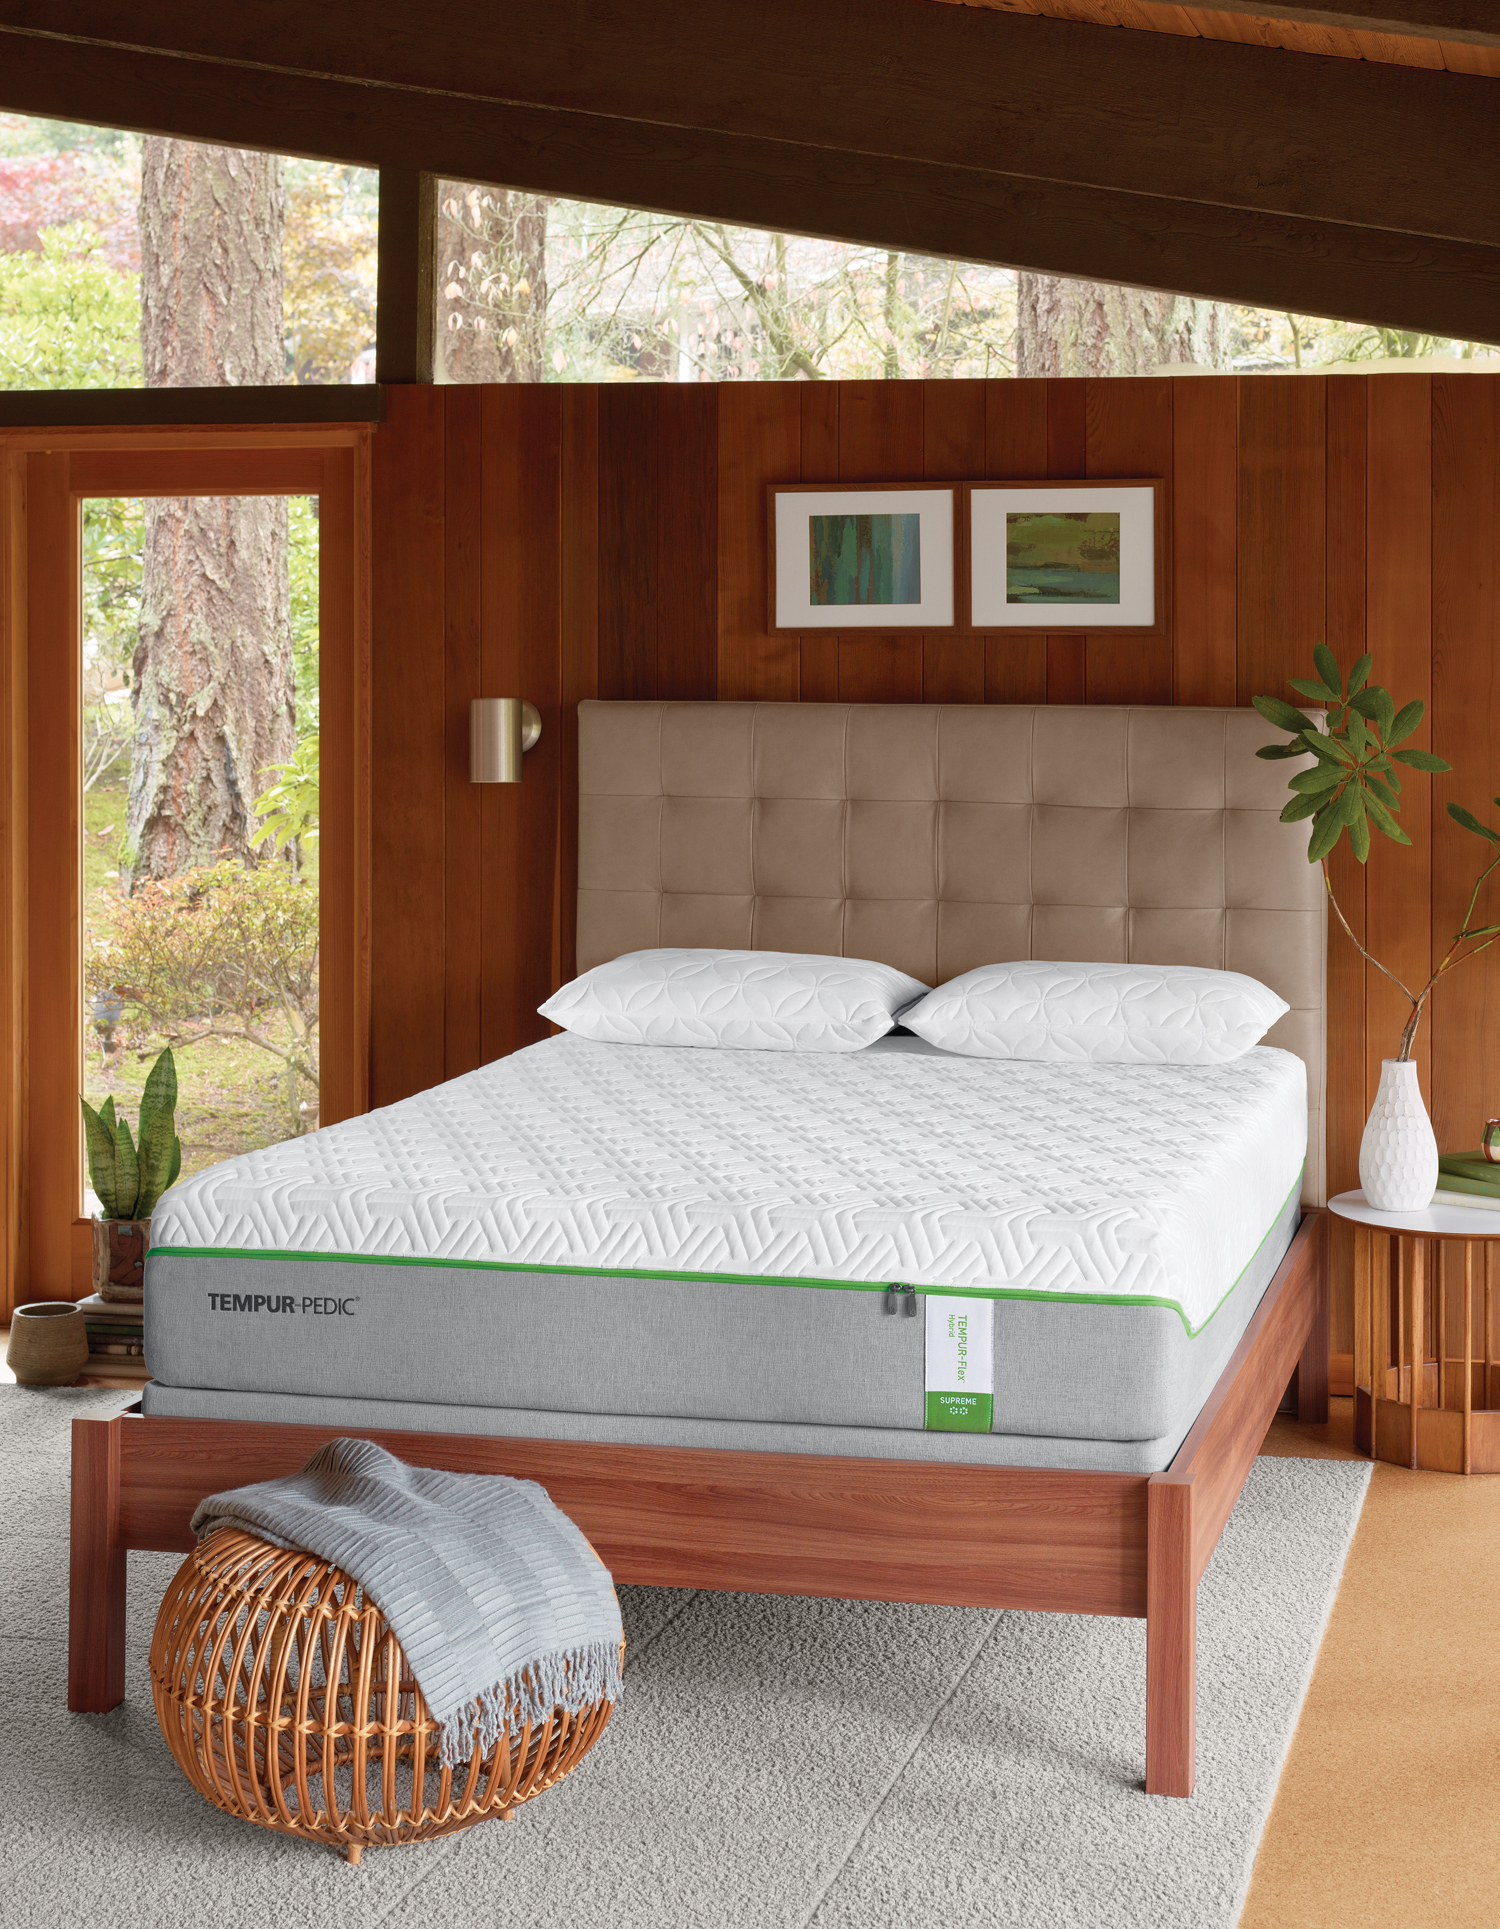 Is a Tempur Pedic Mattress Worth It